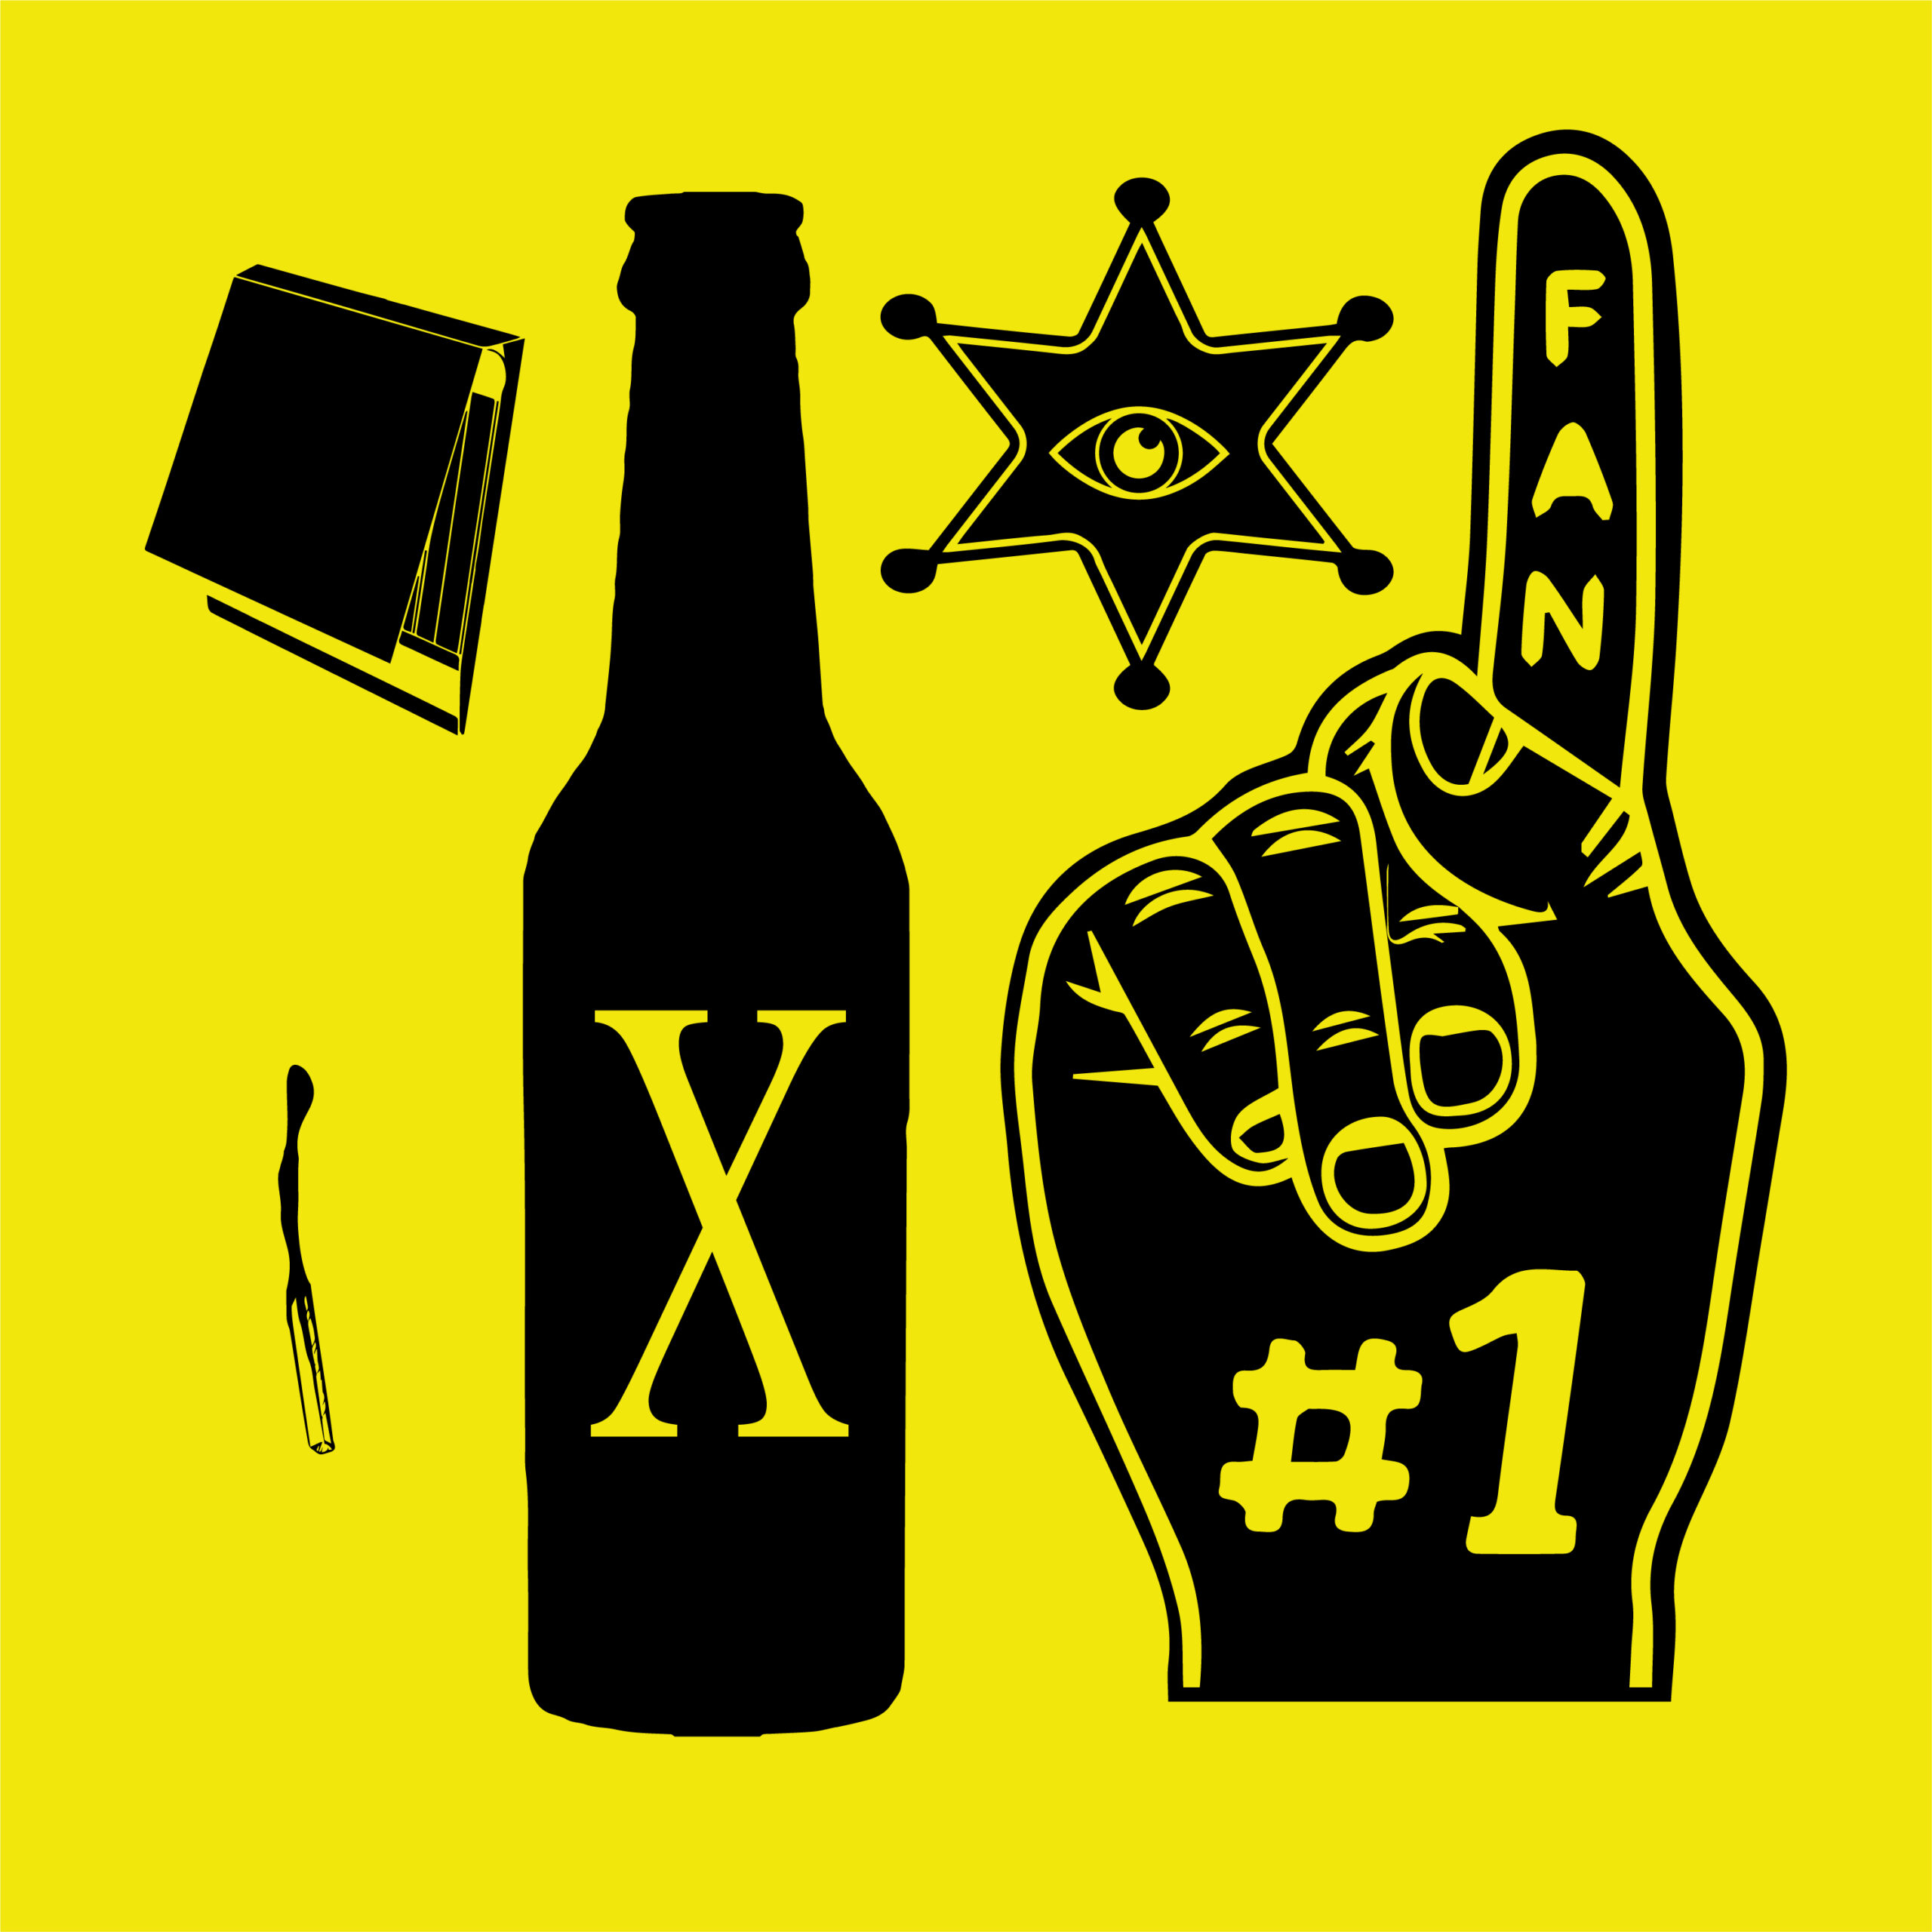 Black images of a bottle, a sports fan #1 hand, a sherrif's star on yellow background